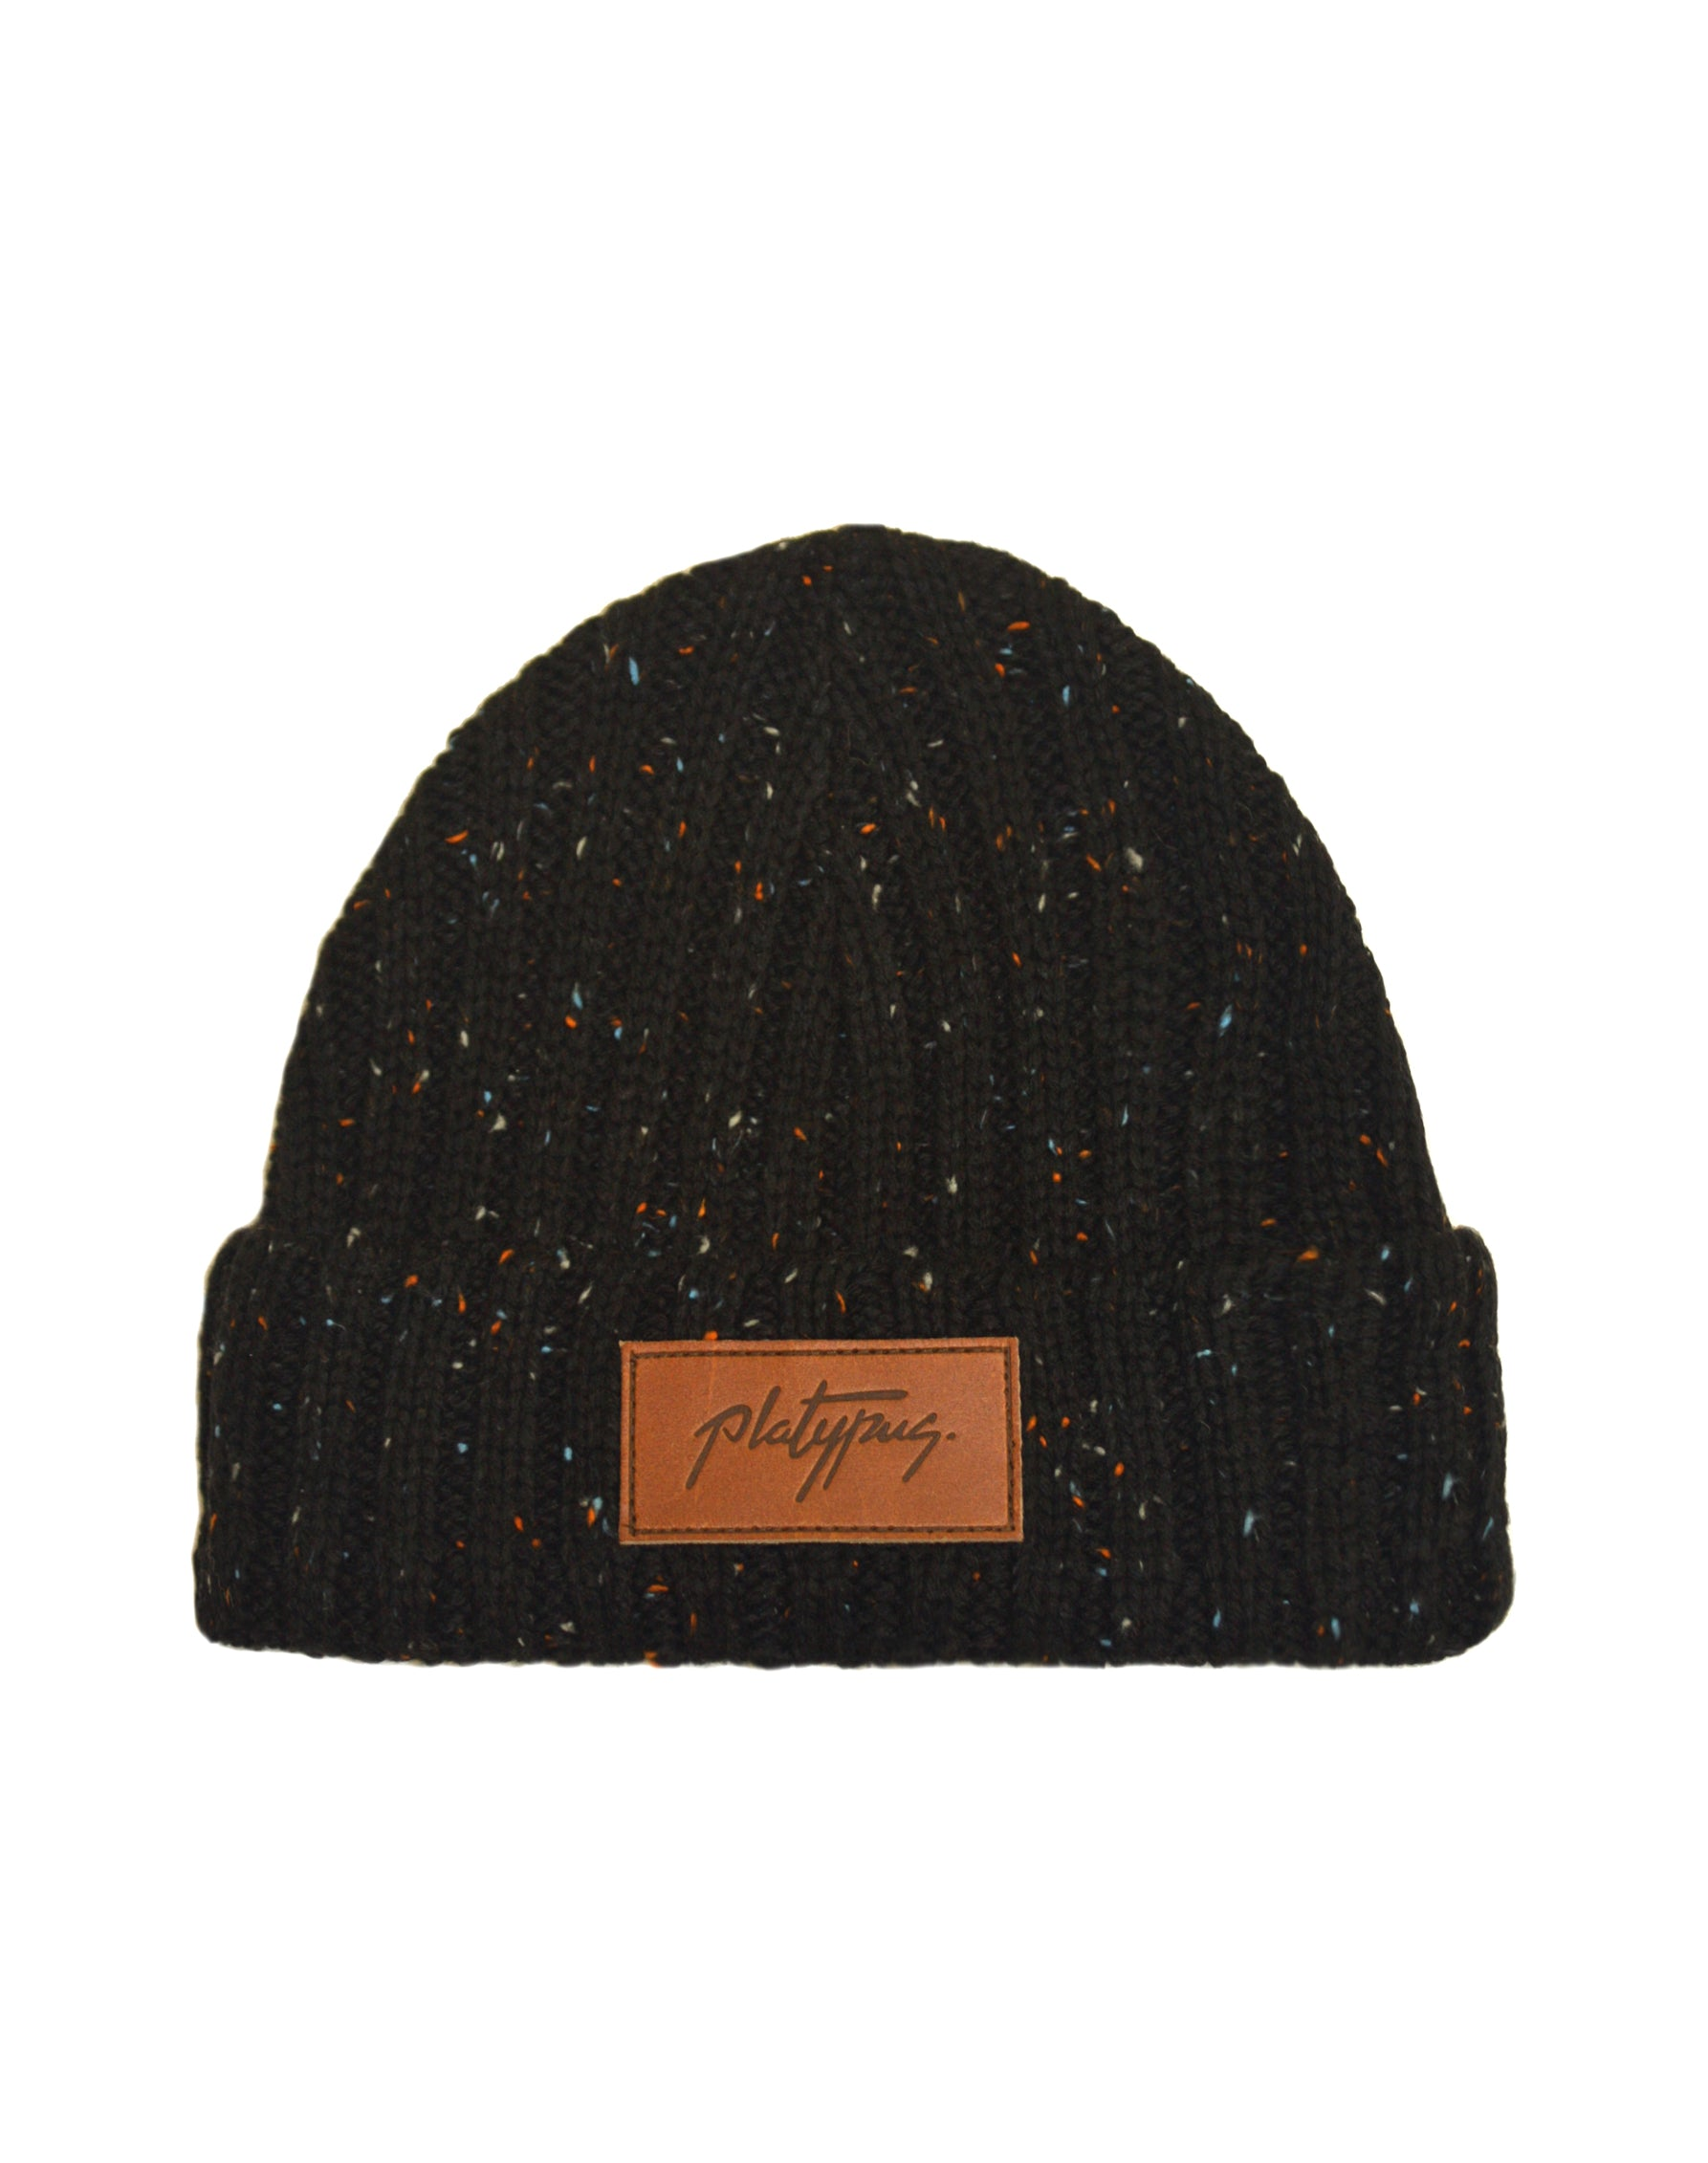 Black Speckle Knit Beanie Hat on Platypus UK Streetwear Fashion